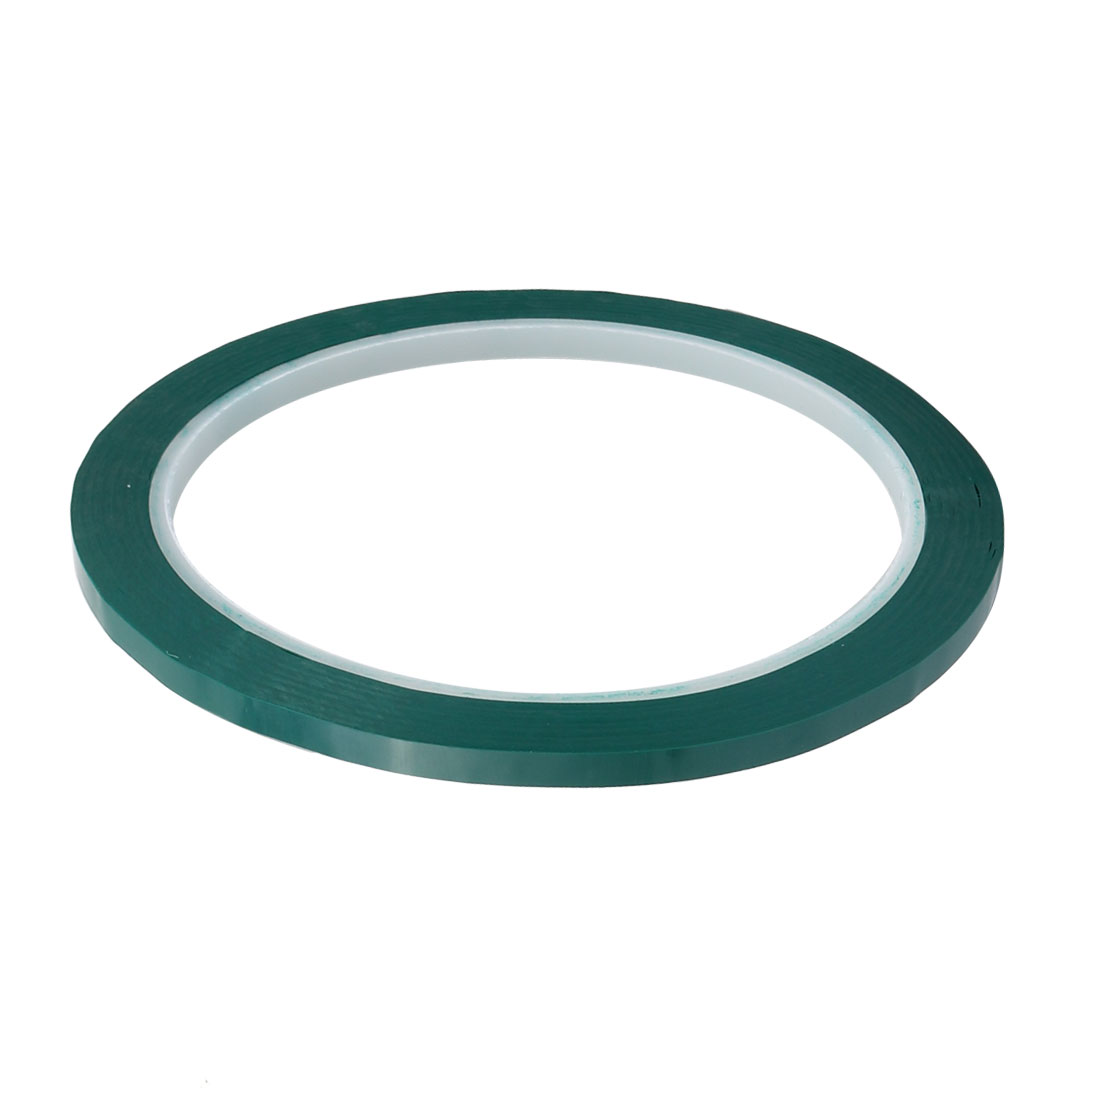 4mm Width 50M Length Single-side Electrical Insulated Adhesive Tape Green 5pcs